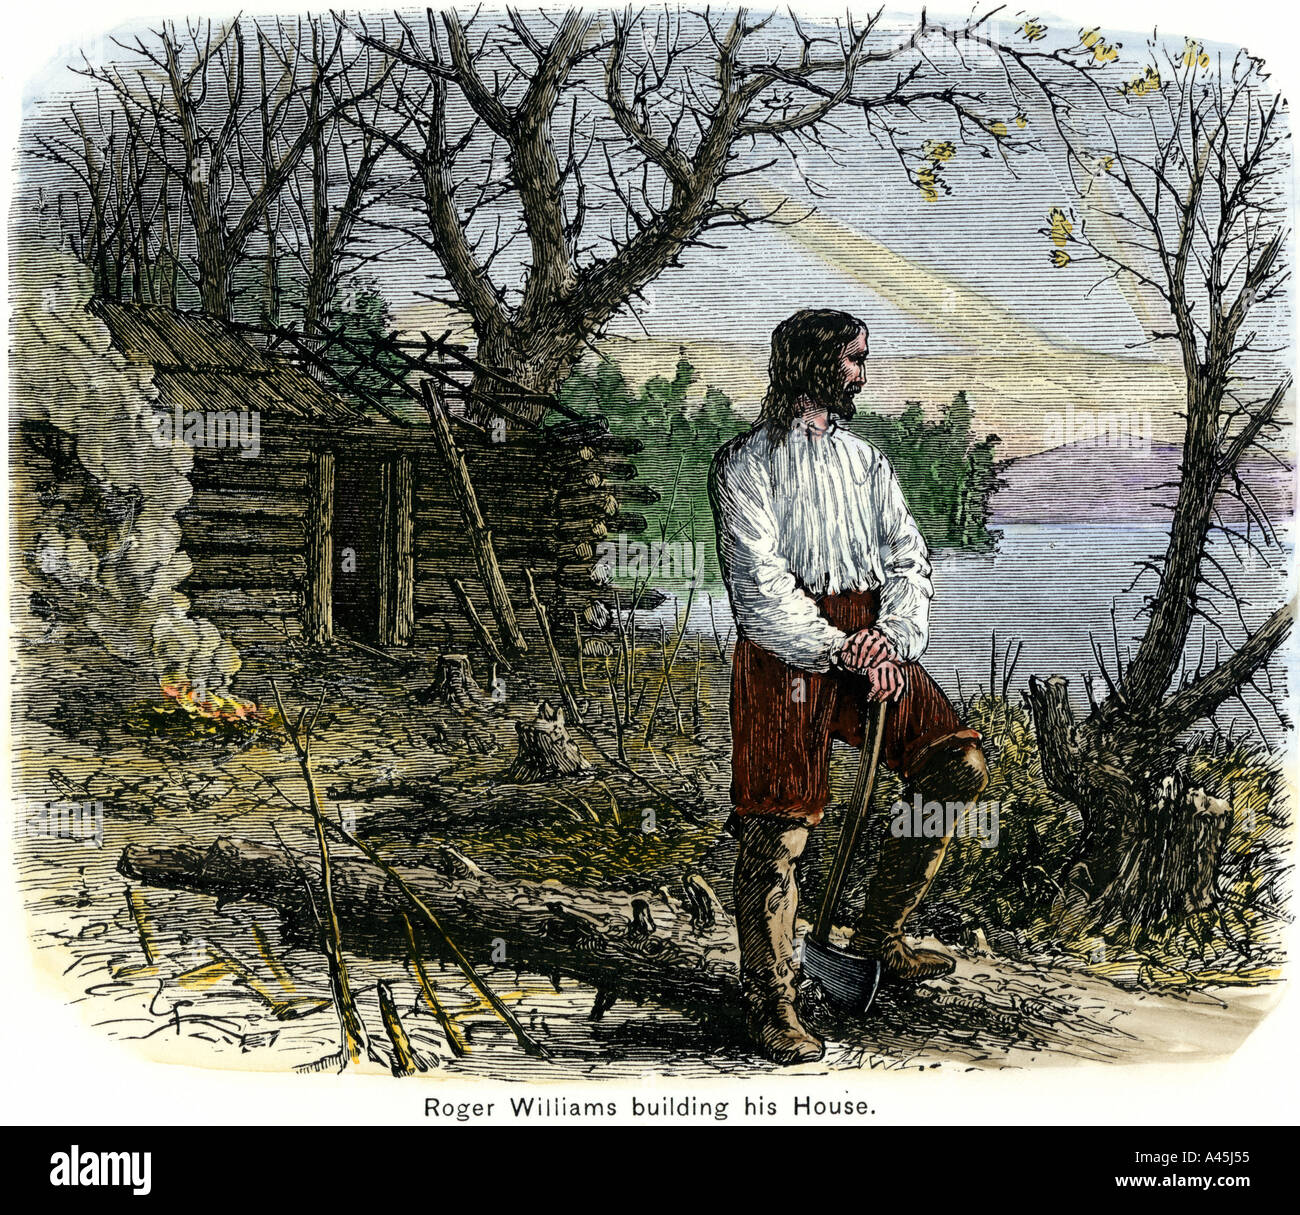 Roger Williams building his house in Rhode Island 1636. Hand-colored woodcut - Stock Image